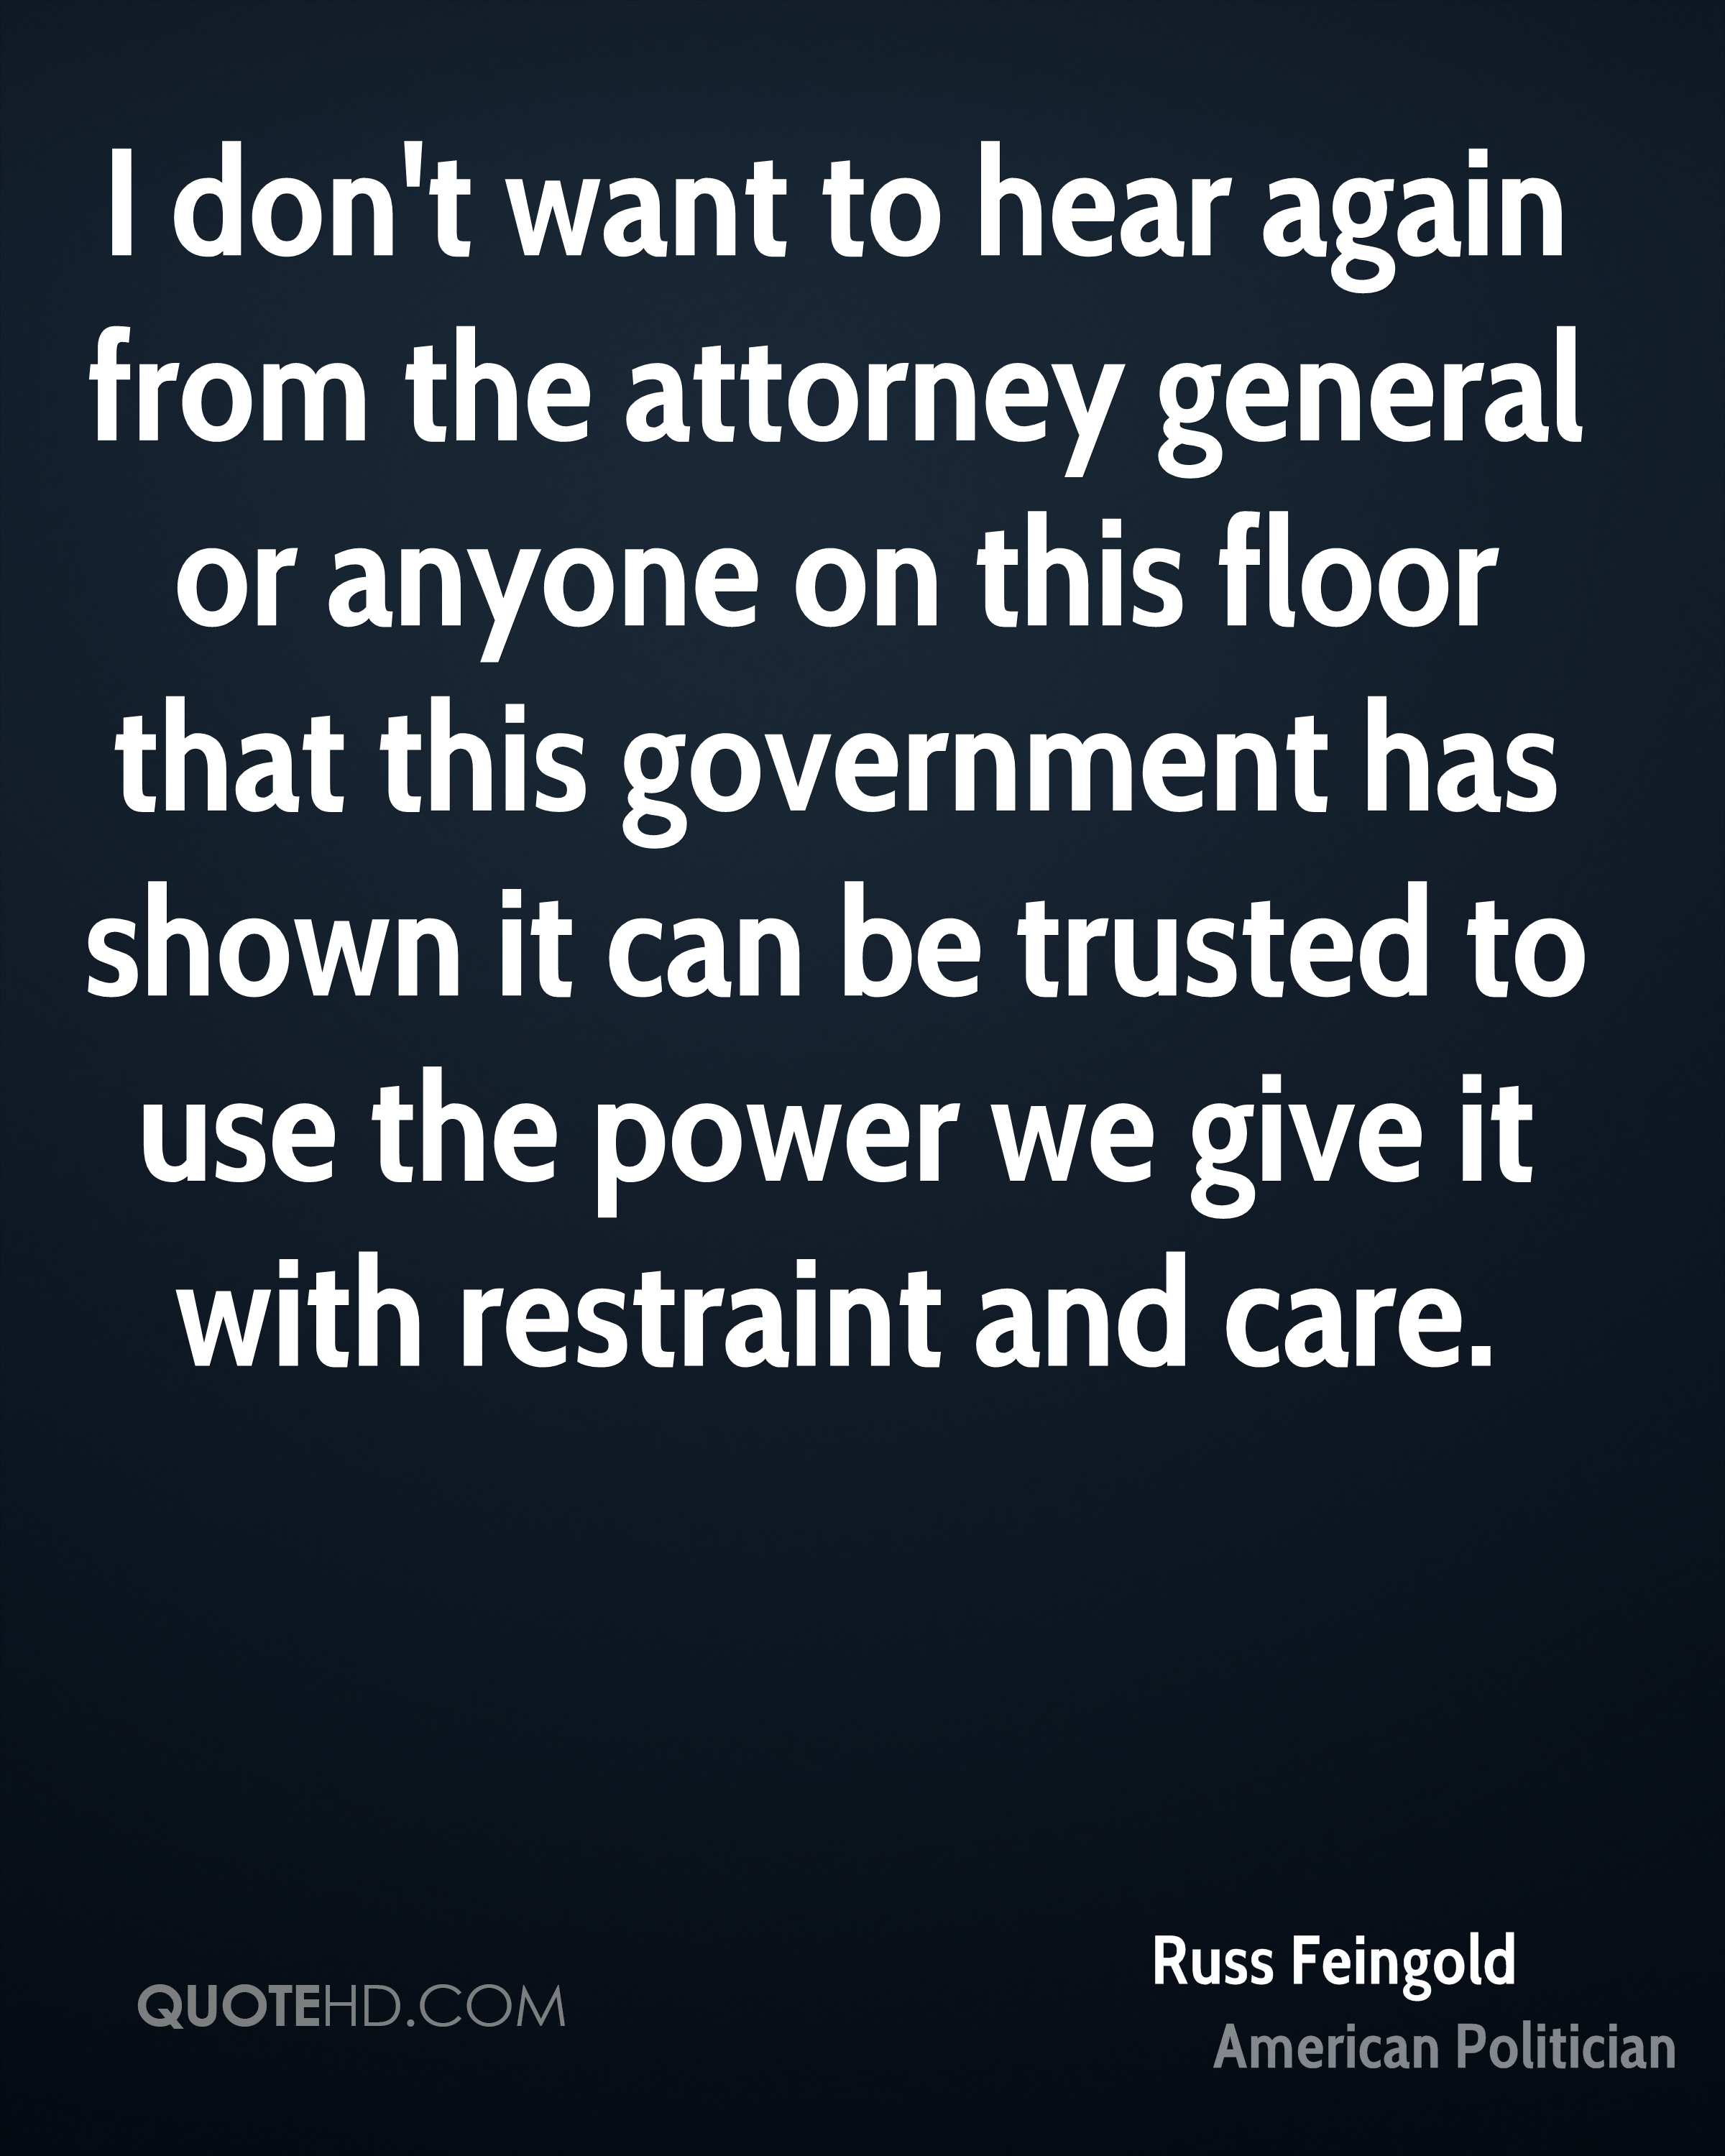 I don't want to hear again from the attorney general or anyone on this floor that this government has shown it can be trusted to use the power we give it with restraint and care.